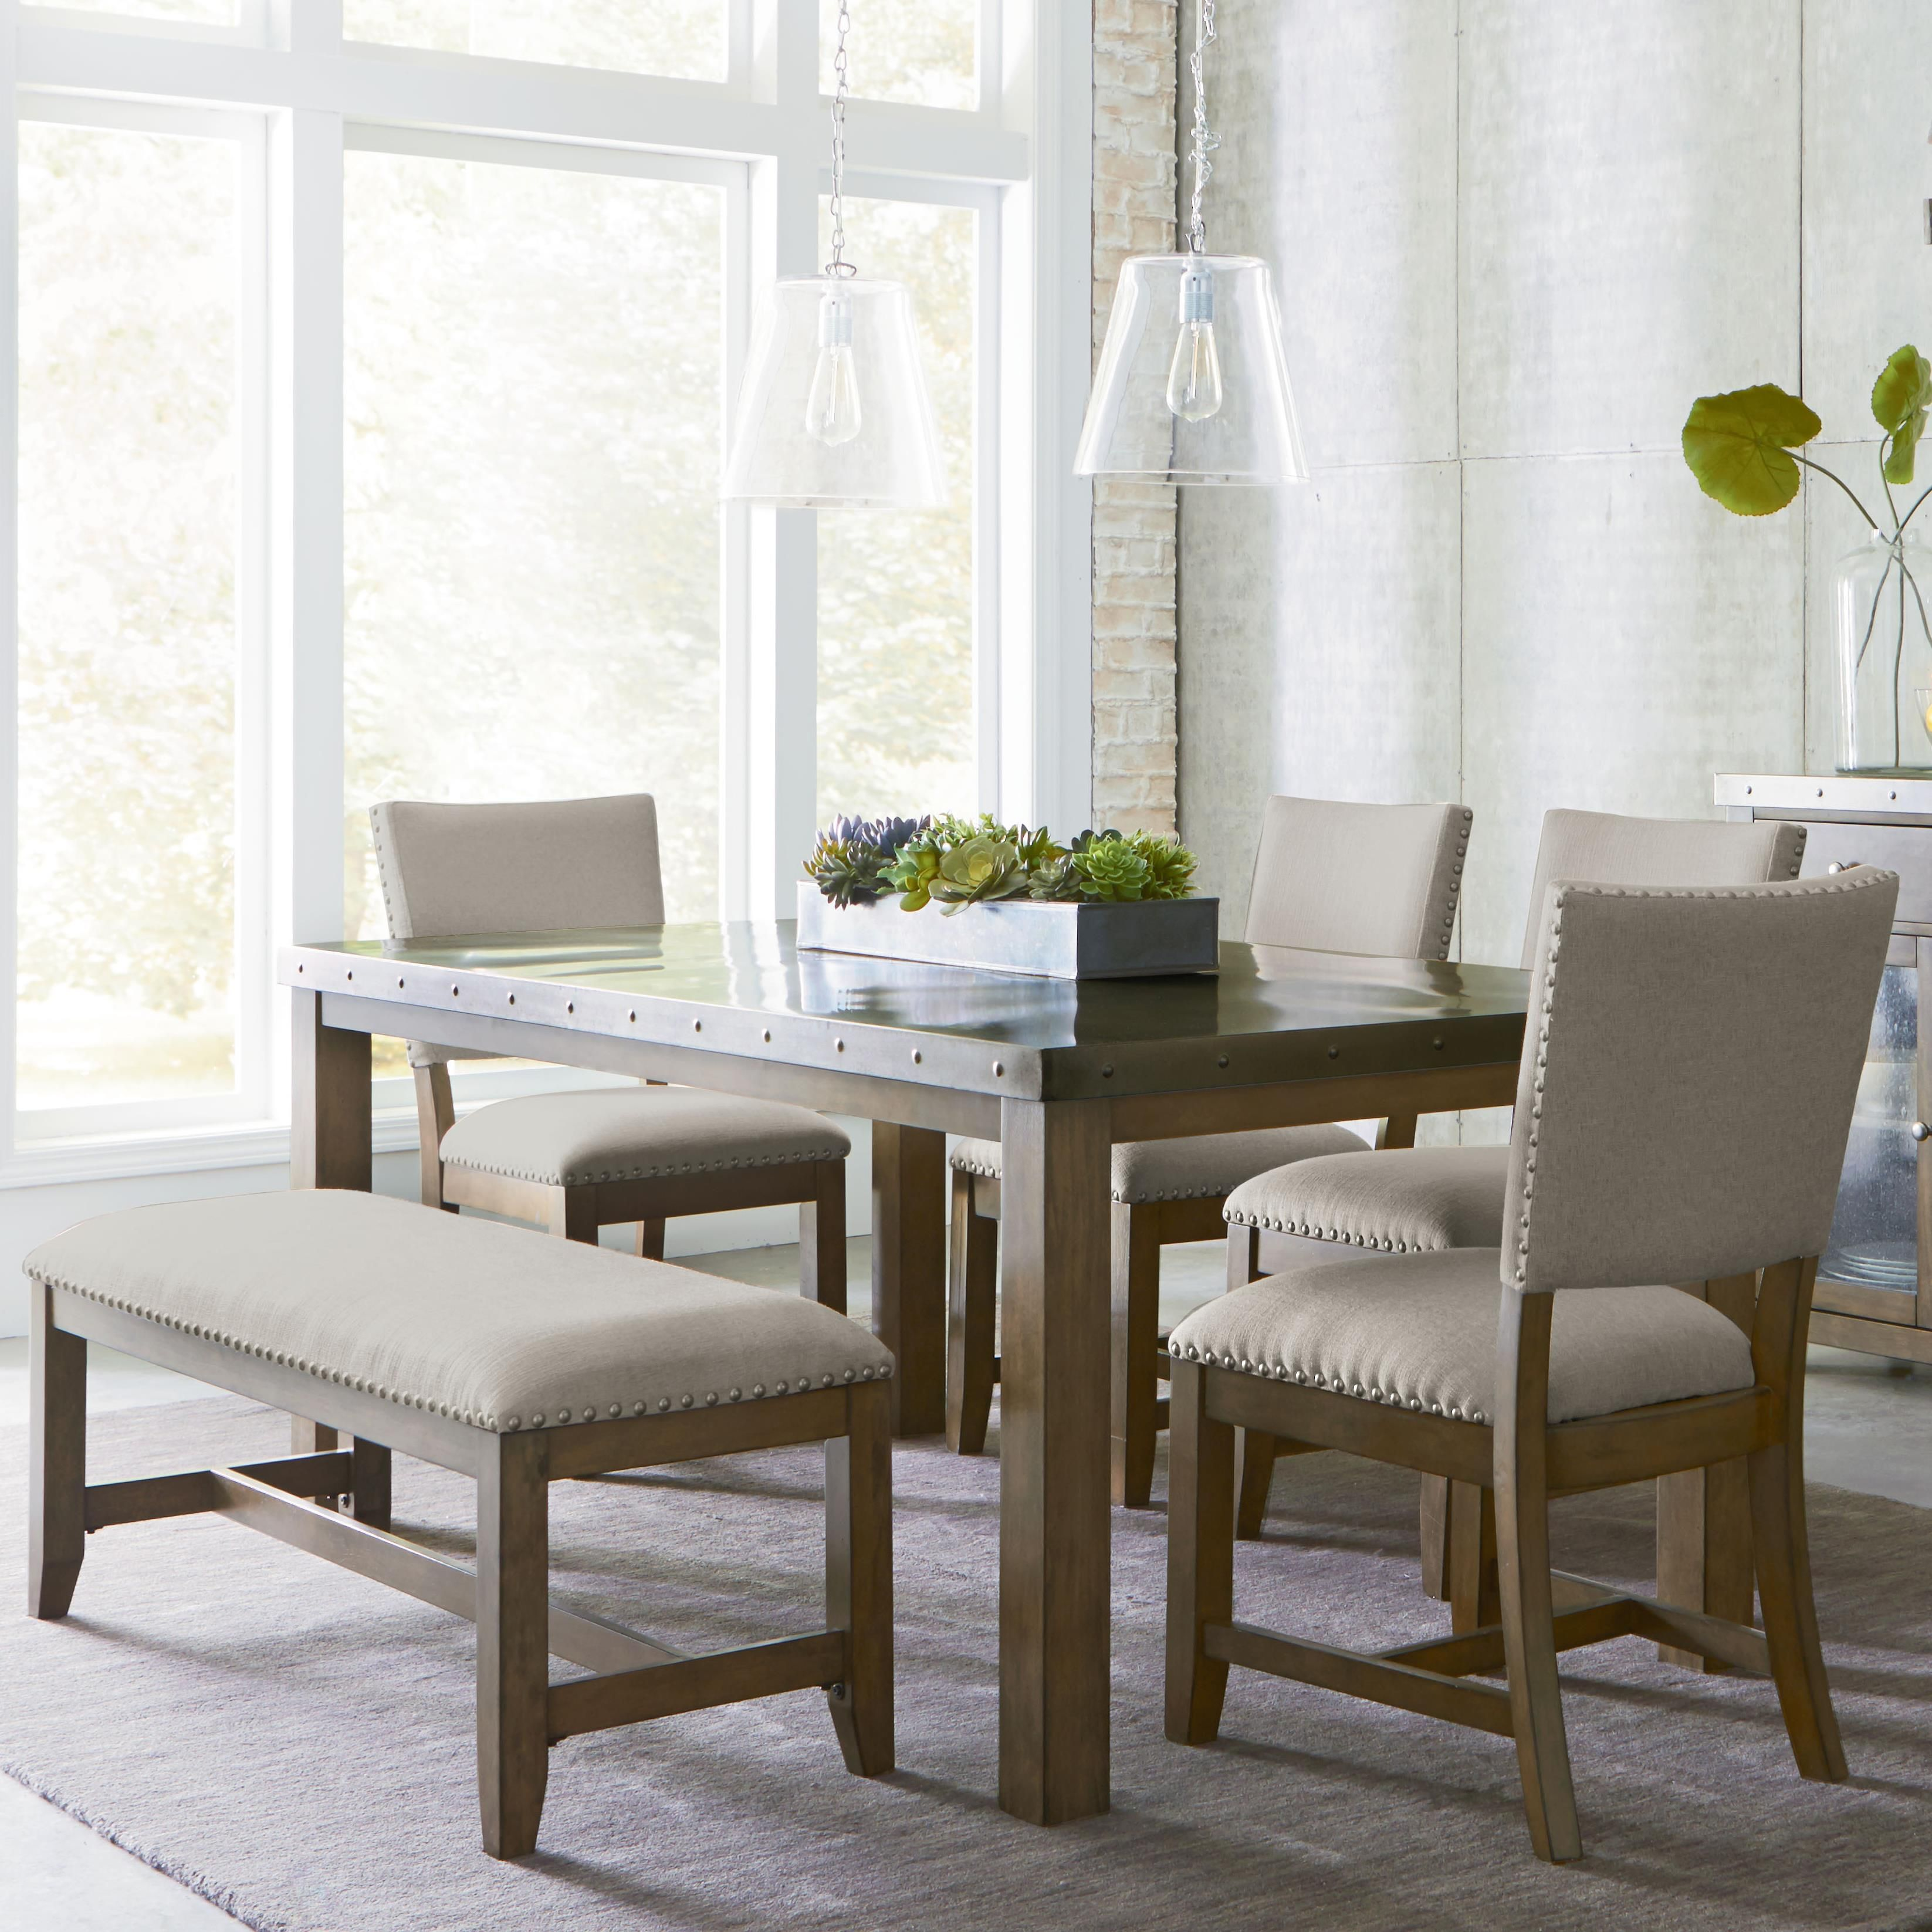 Stainless Steel Dining Room Tables Pinkarla Schulz On Decor  Pinterest  House Interior Design